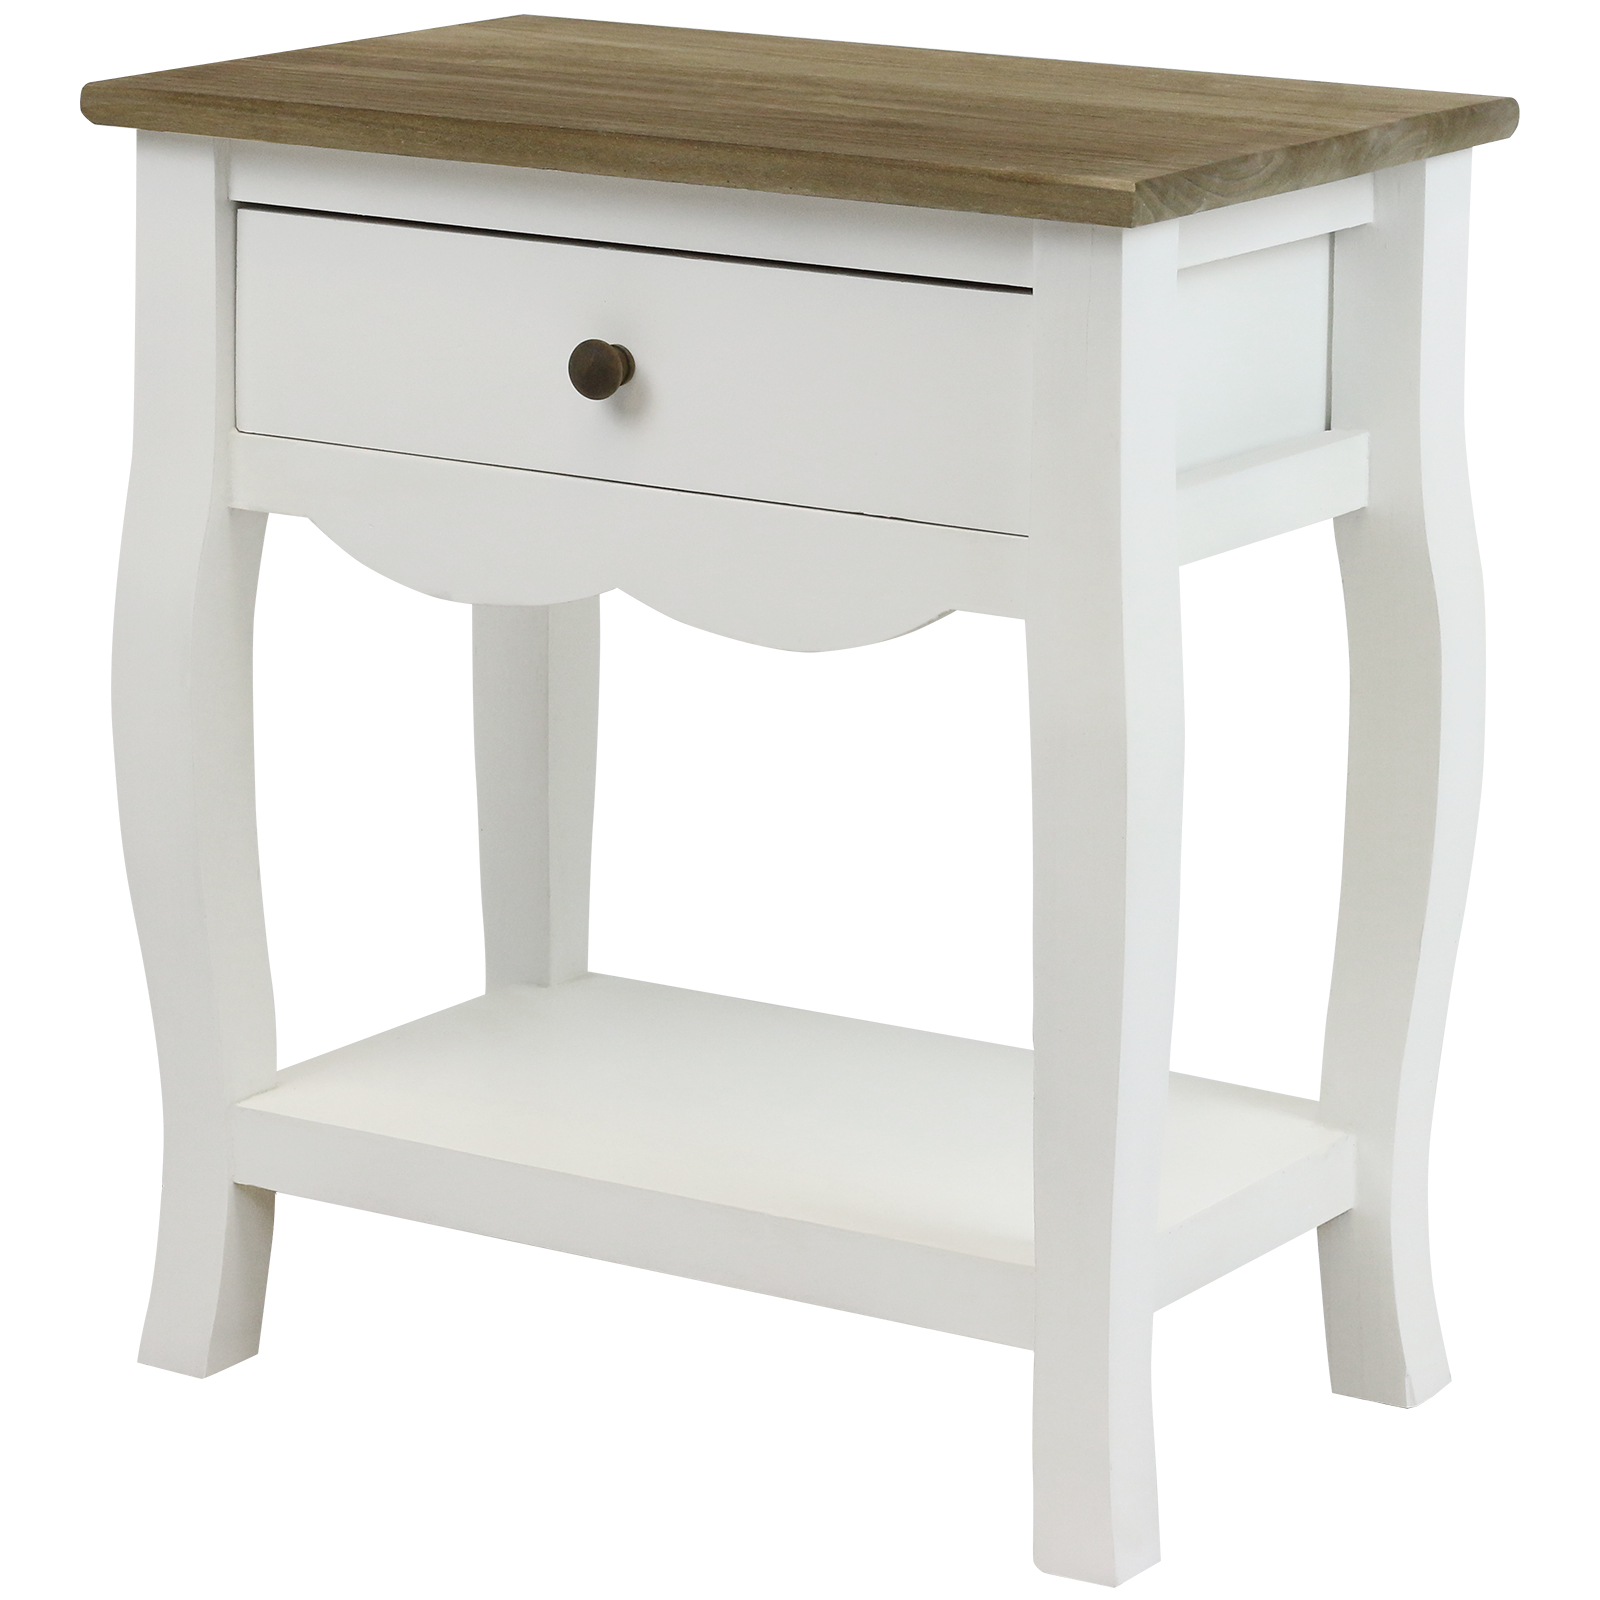 HARTLEYS WHITE & DISTRESSED WOOD TOP BEDSIDE TABLE